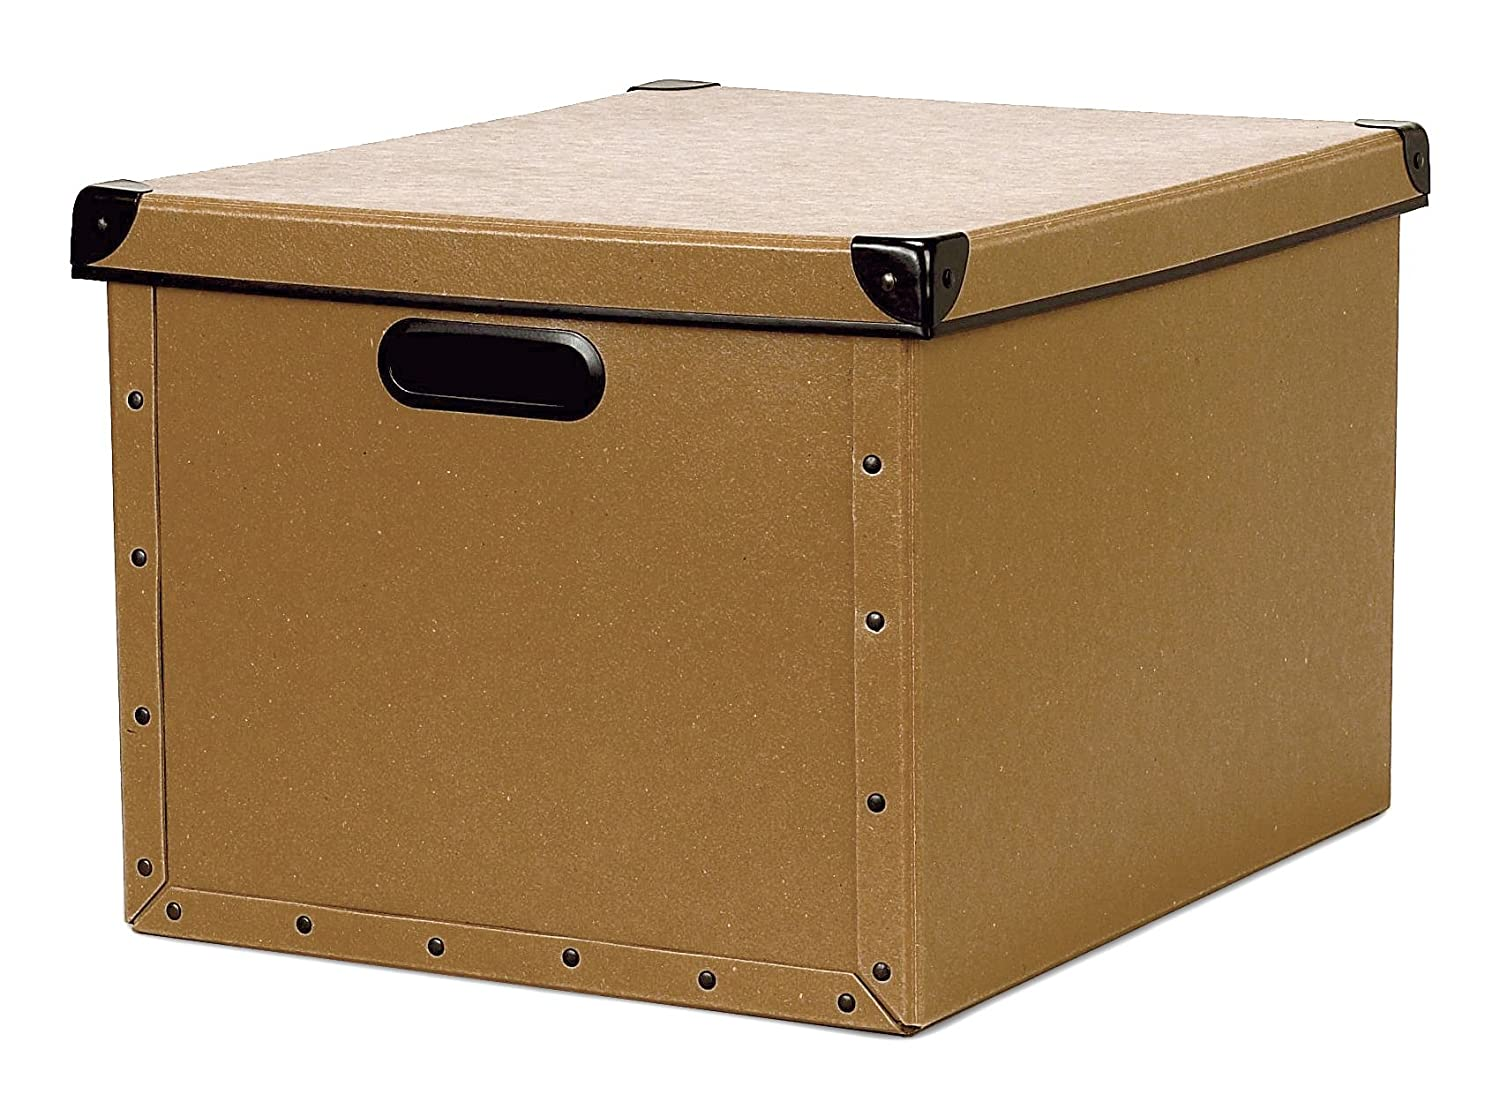 Amazon.com: Cargo Naturals Dual File Box, Sage, 10 3/4 By 15 1/2 By  12 1/2 Inch: Home U0026 Kitchen